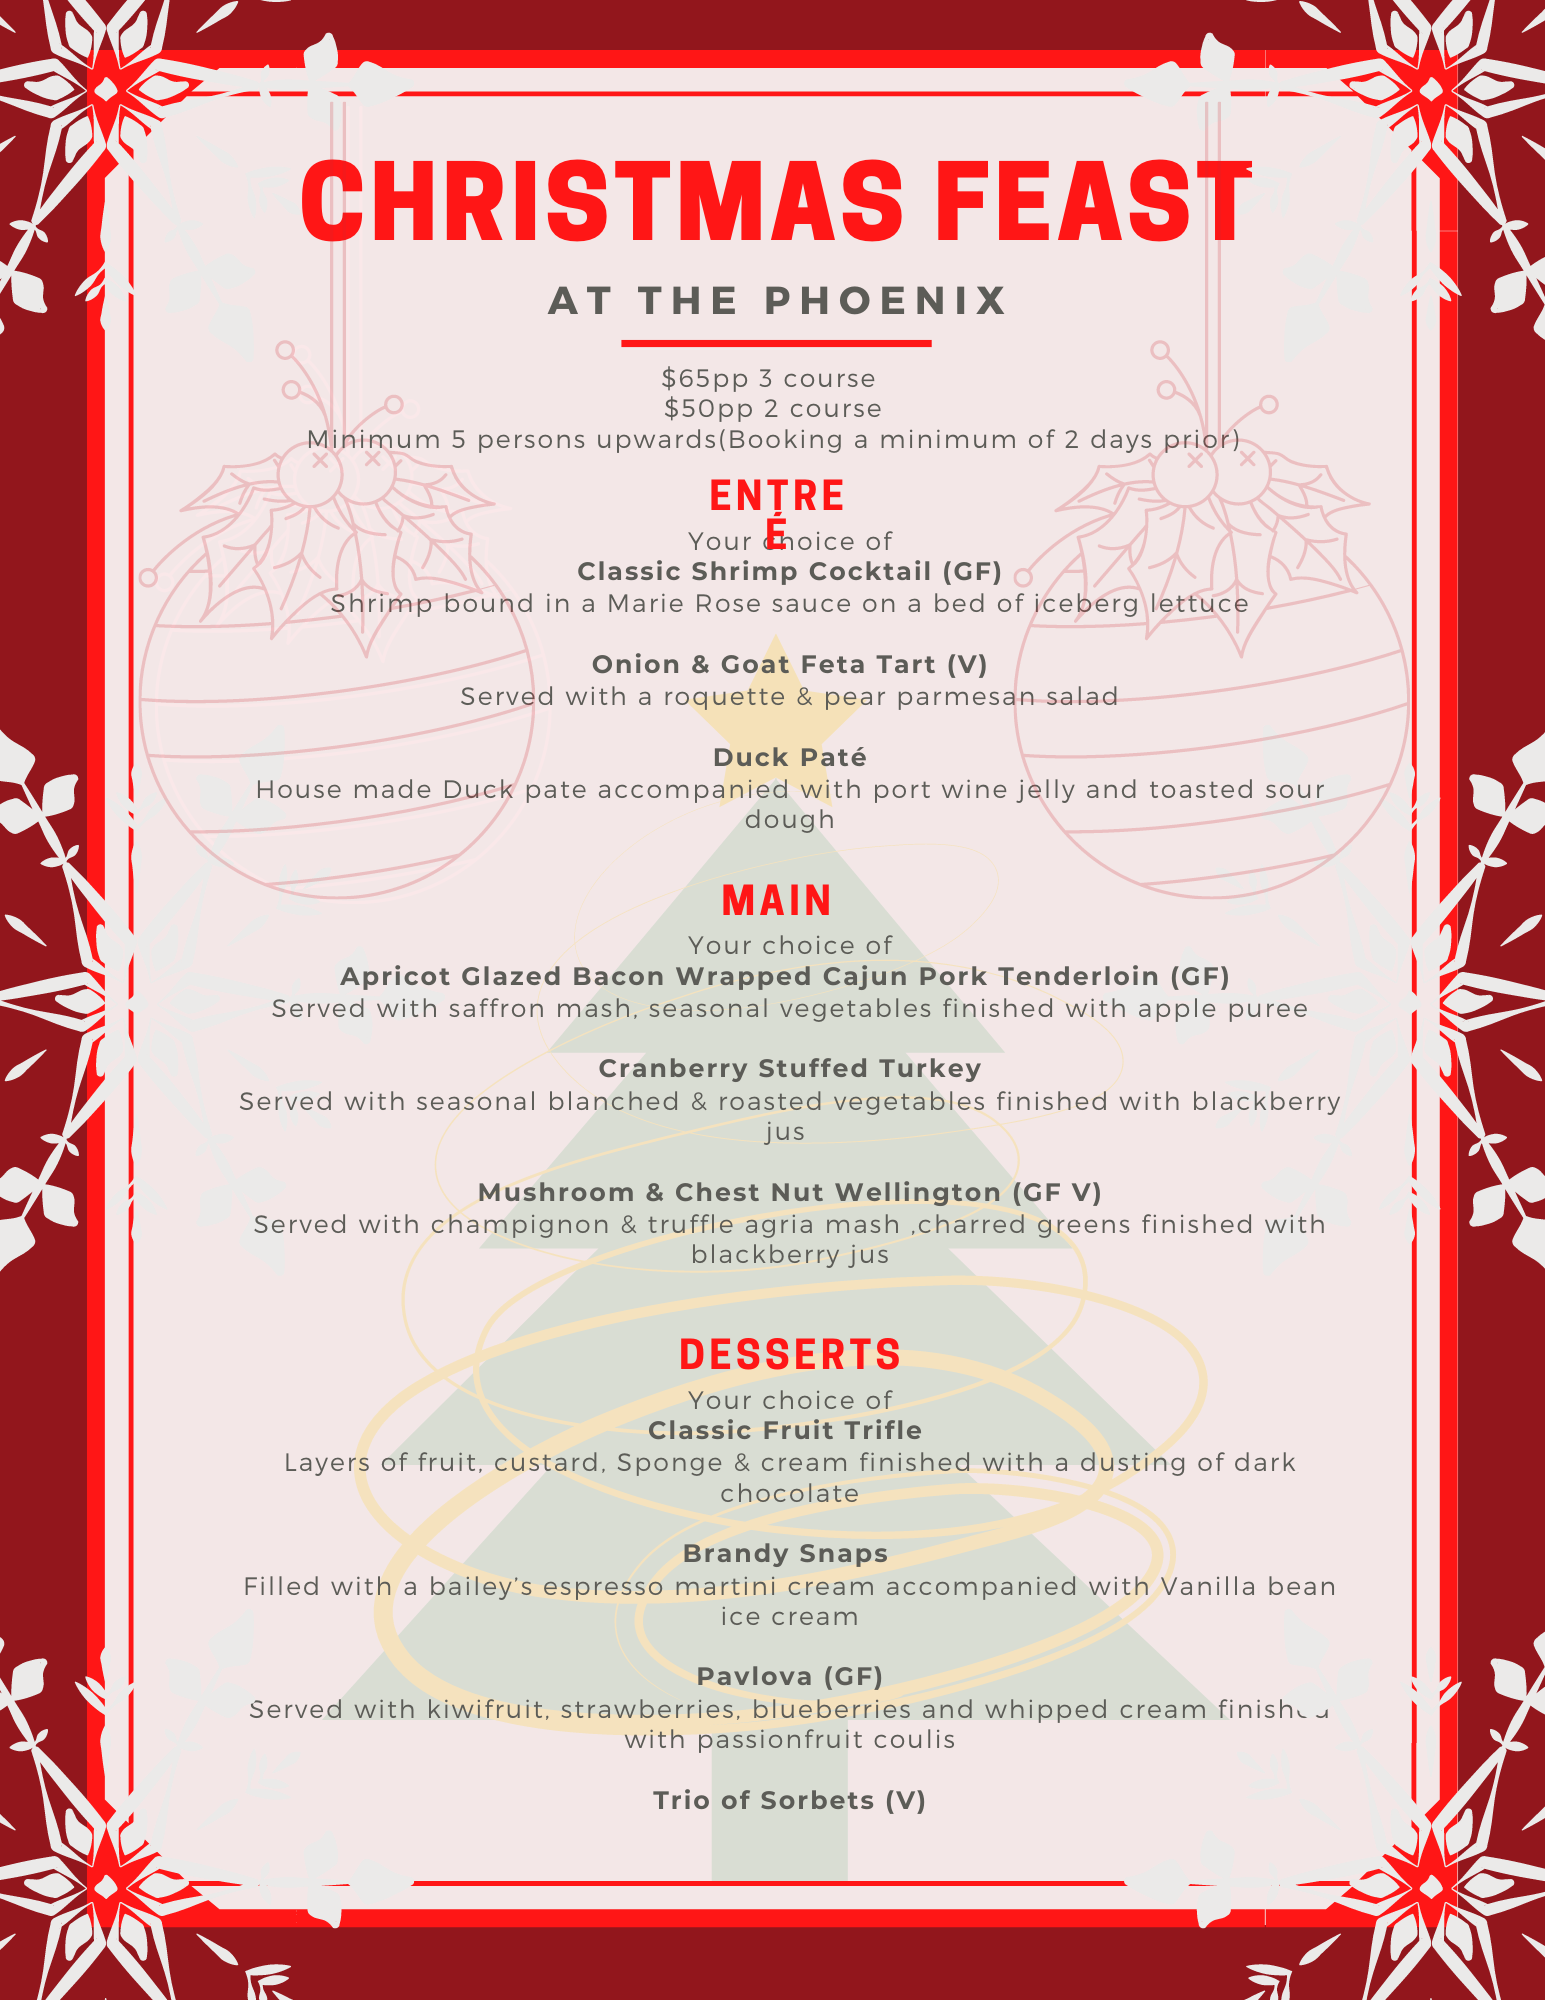 The Phoenix Christmas menu